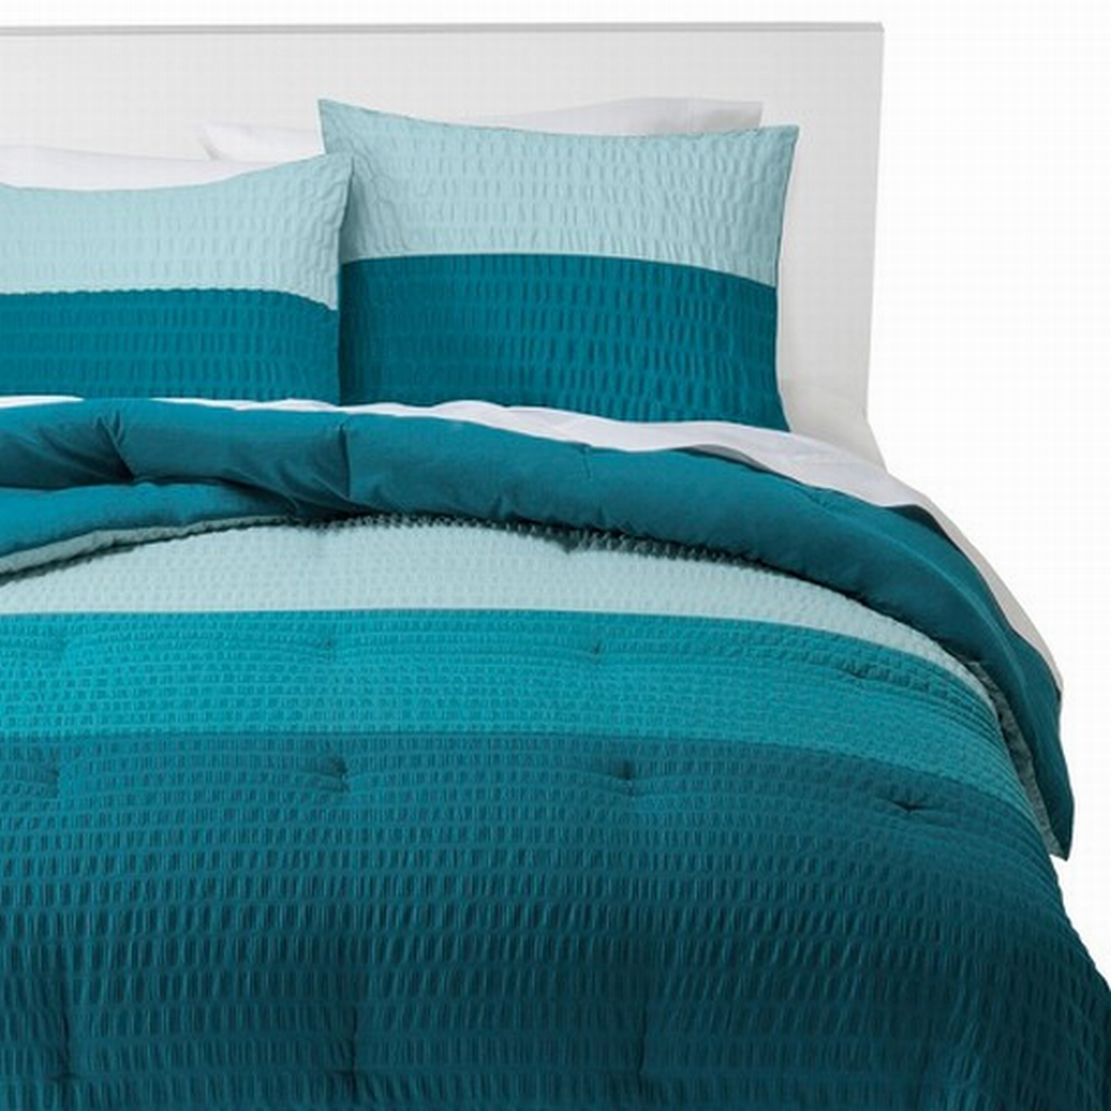 Room Essentials Twin XL Bed Comforter & Sham Set 2-Tone Blue Gathered Textured